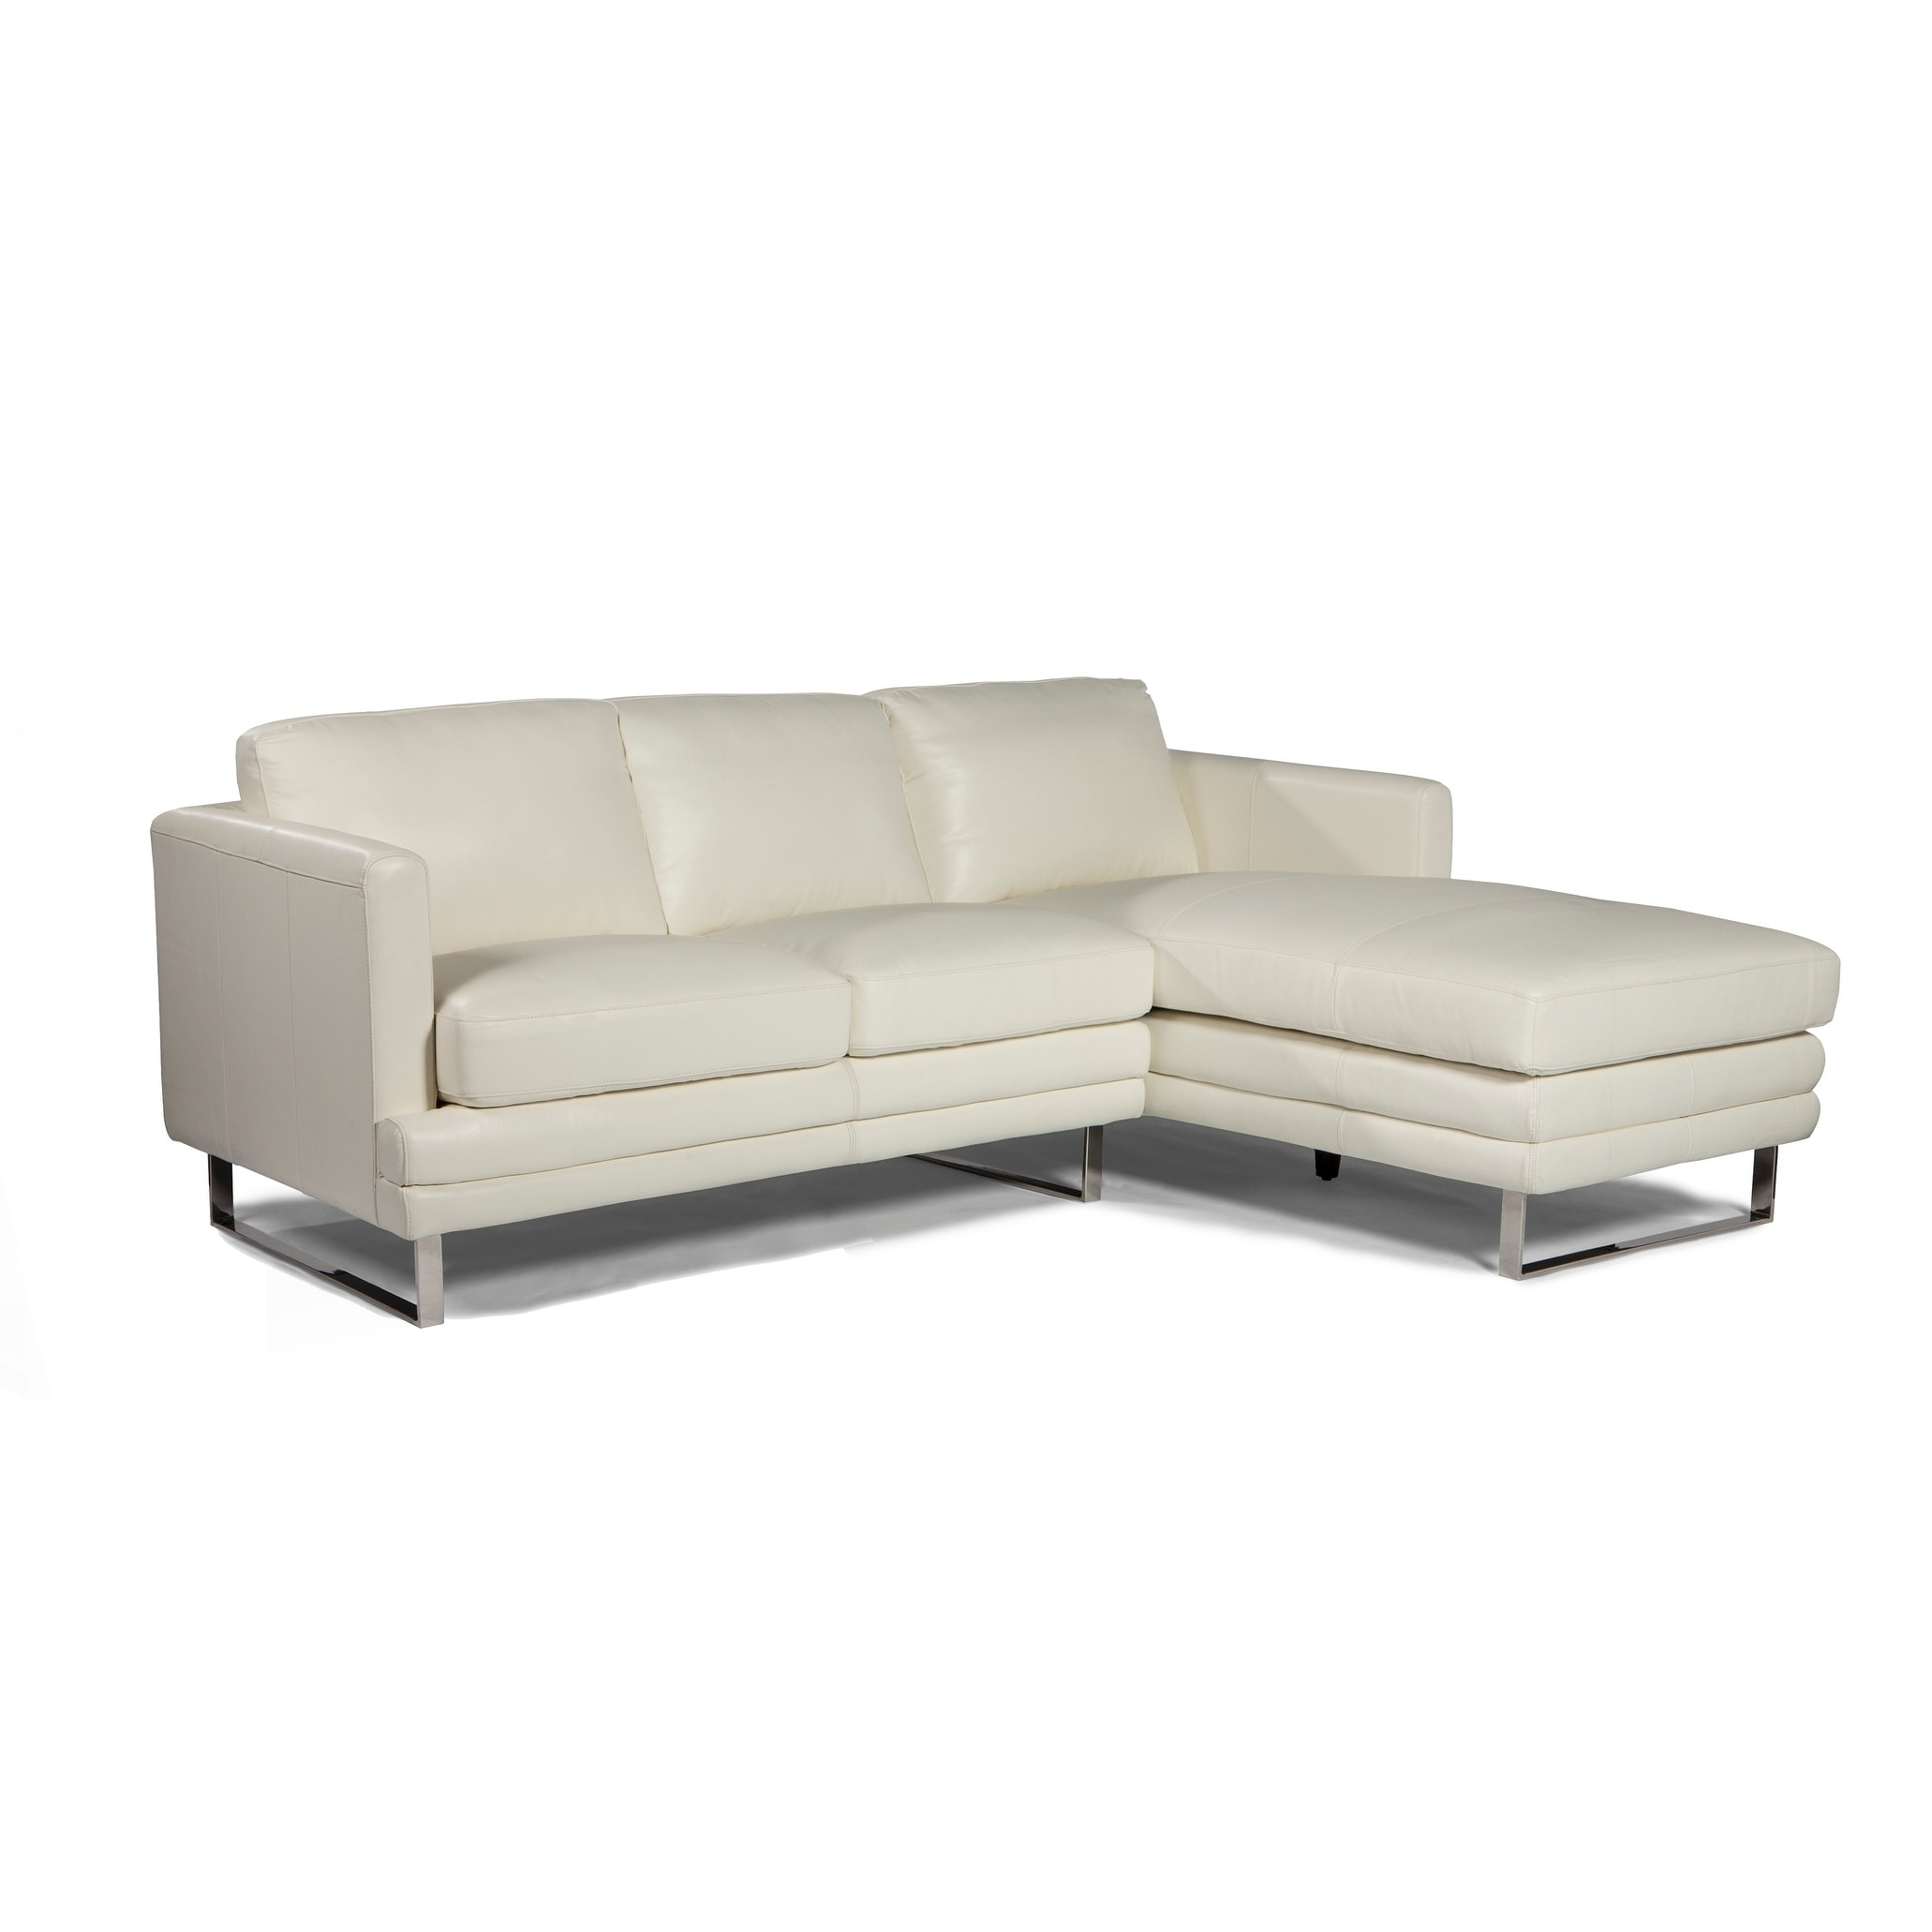 Shop Lazzaro Melbourne White Leather Loveseat Chaise Sectional Overstock 18502924